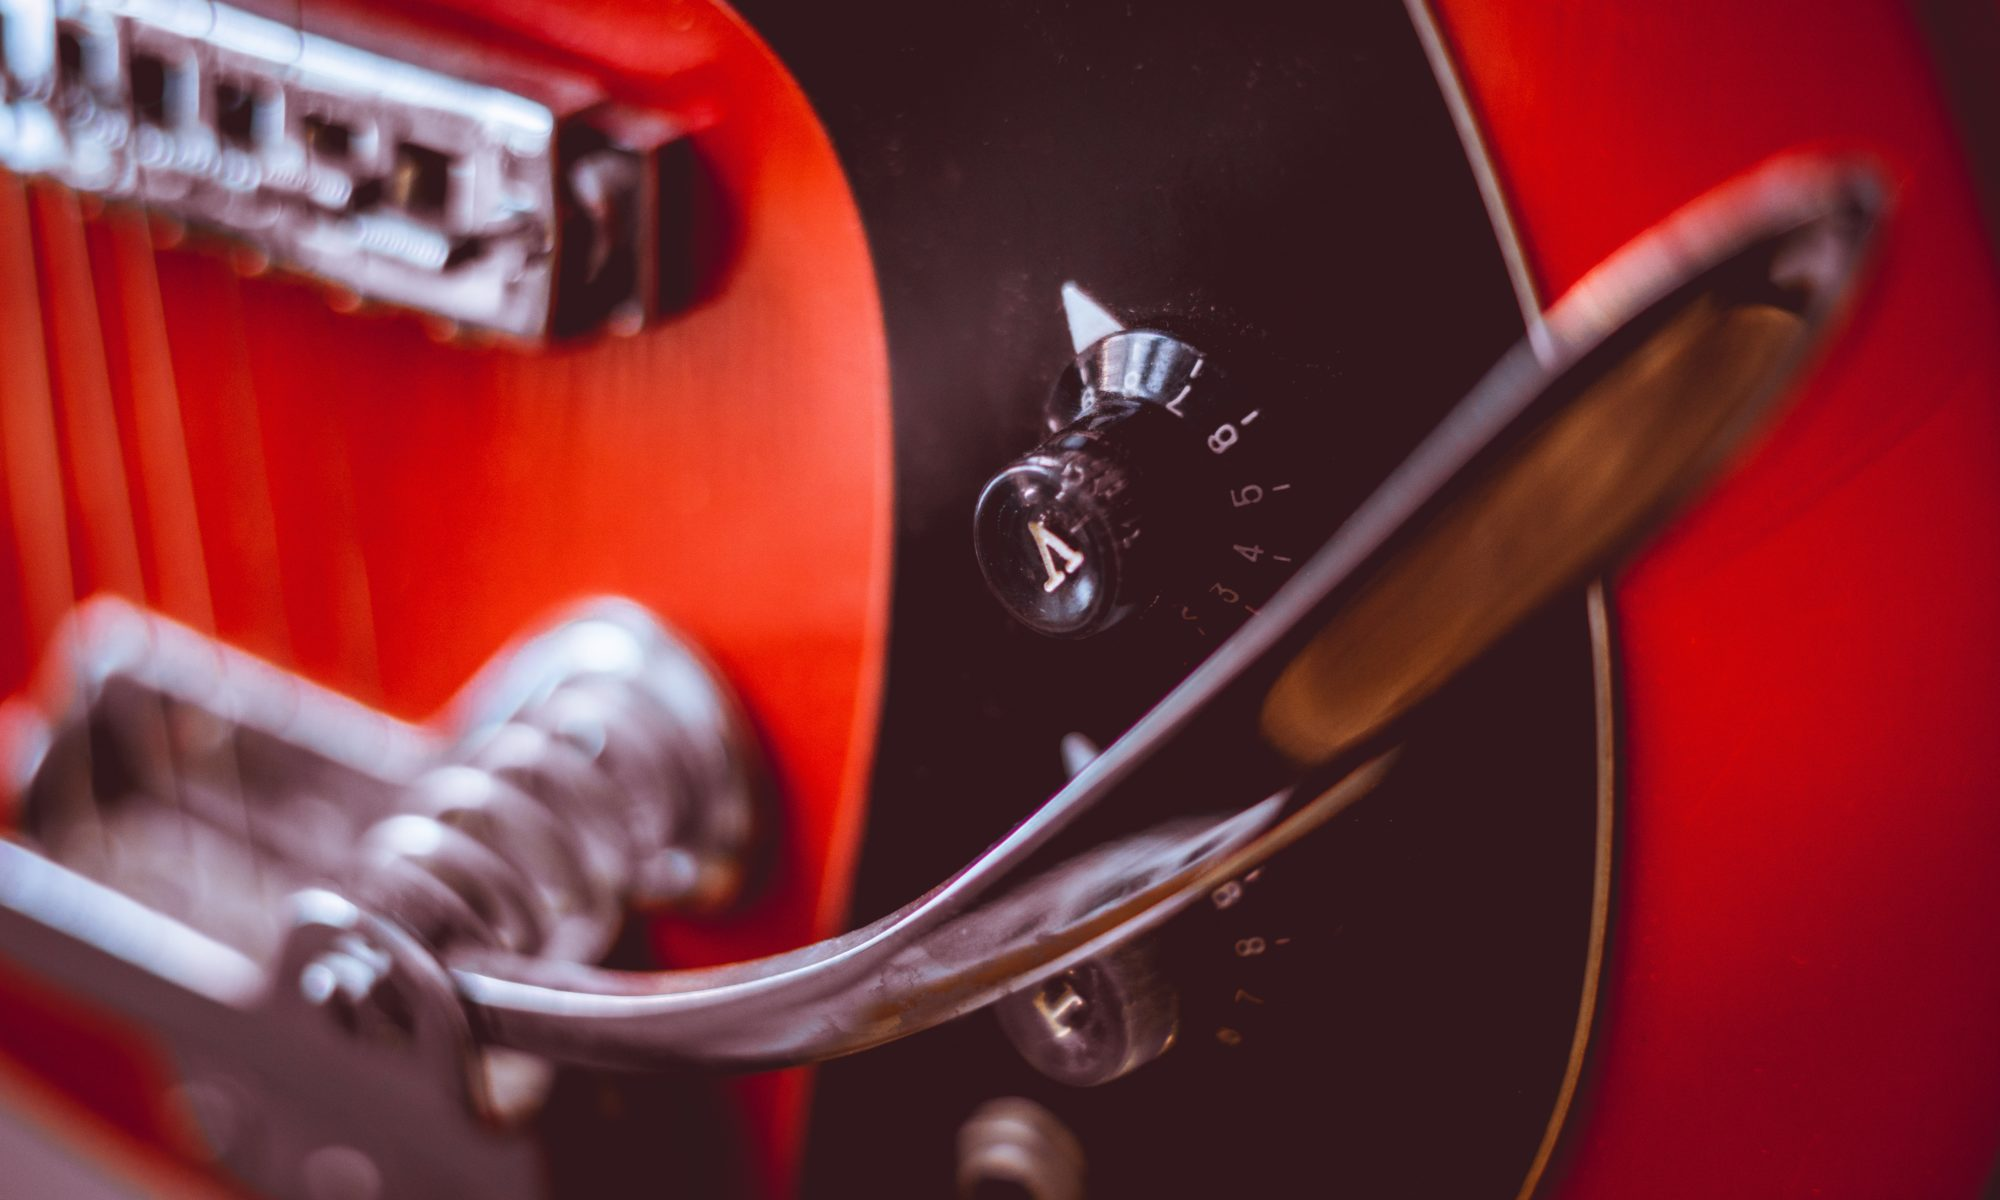 A close up of a red and black electric guitar.